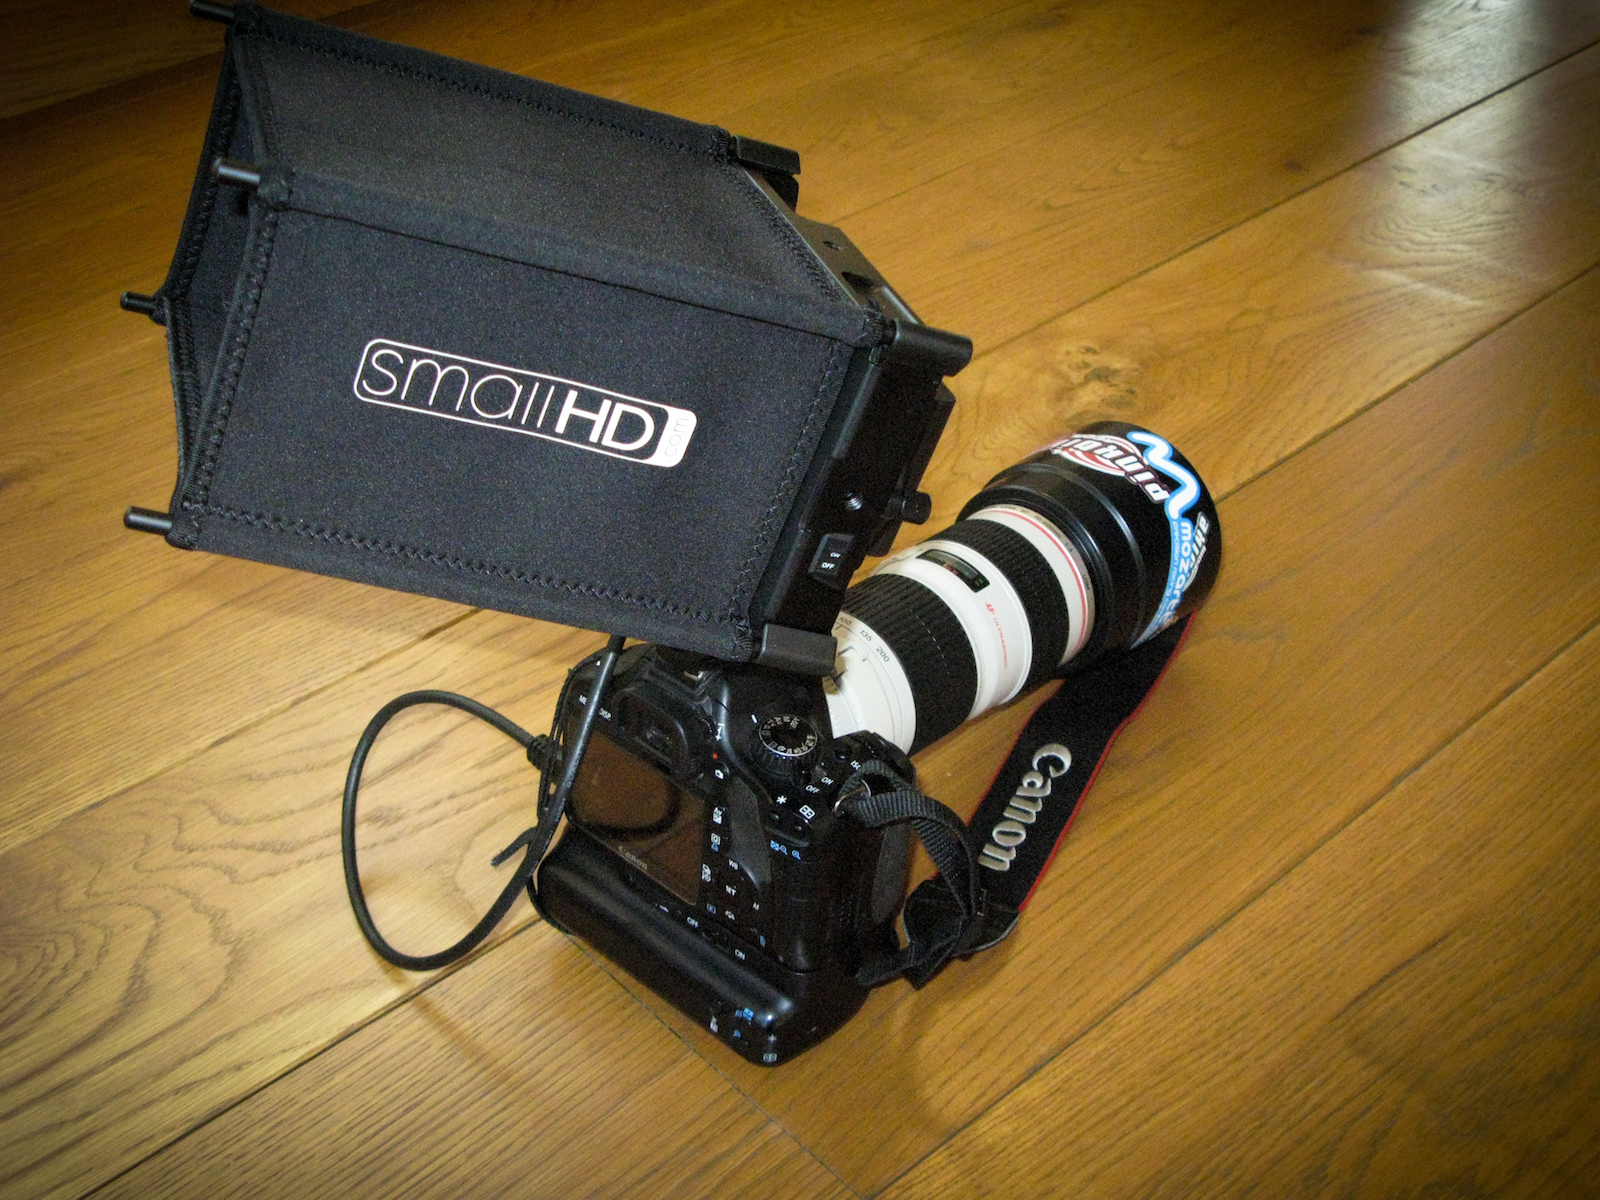 my camera setup, ready for the weekend.